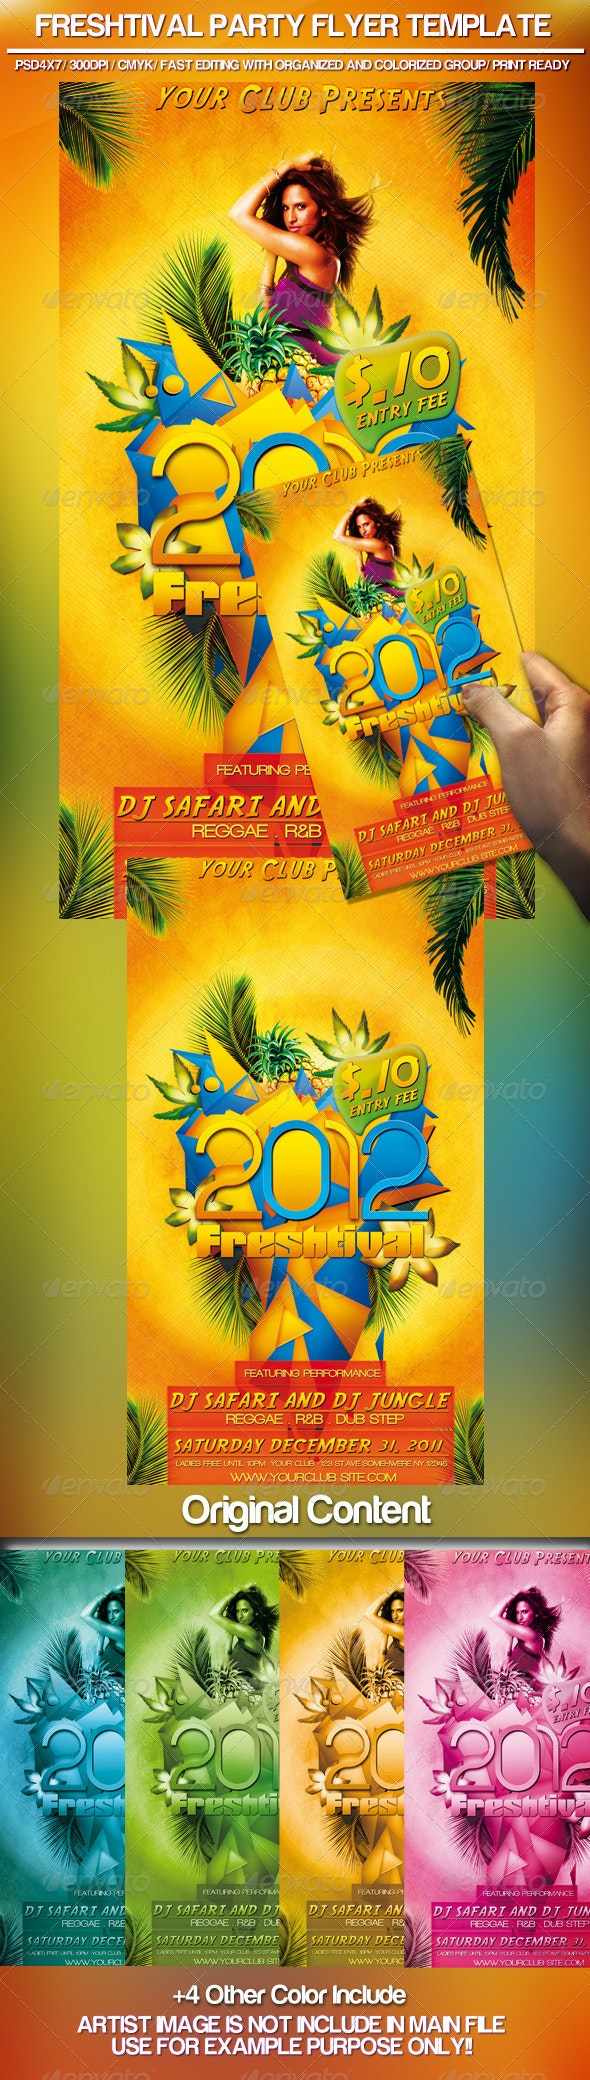 2012 Freshtival Party Flyer Template  - Clubs & Parties Events